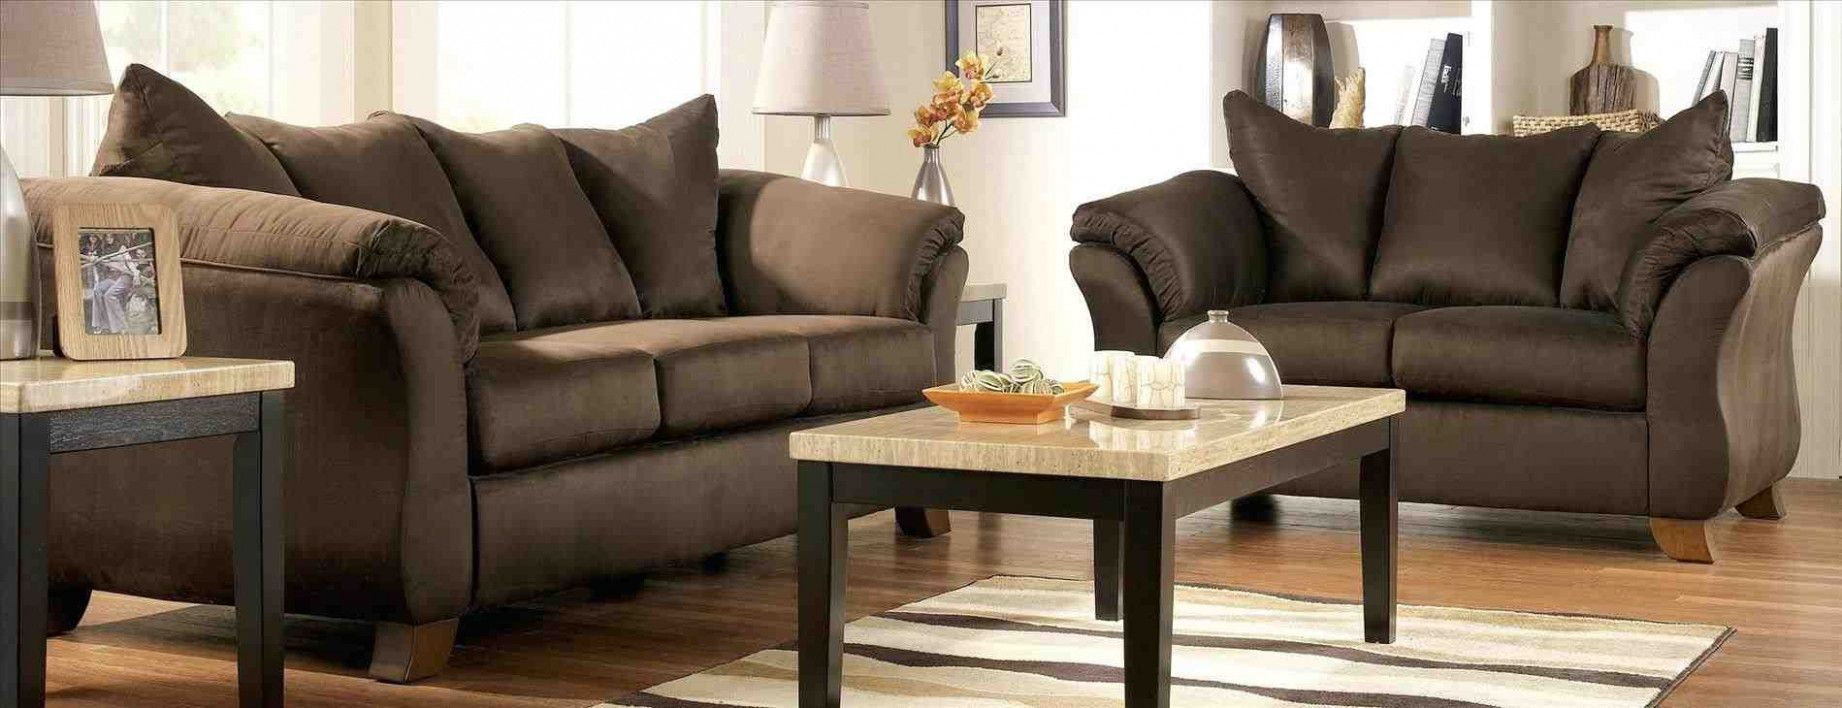 New Wooden Sofa Set Prices In Bangalore Robert Wan New Wooden Sofa Set Pr In 2020 With Images Cheap Living Room Sets Discount Living Room Furniture Cheap Living Room Furniture